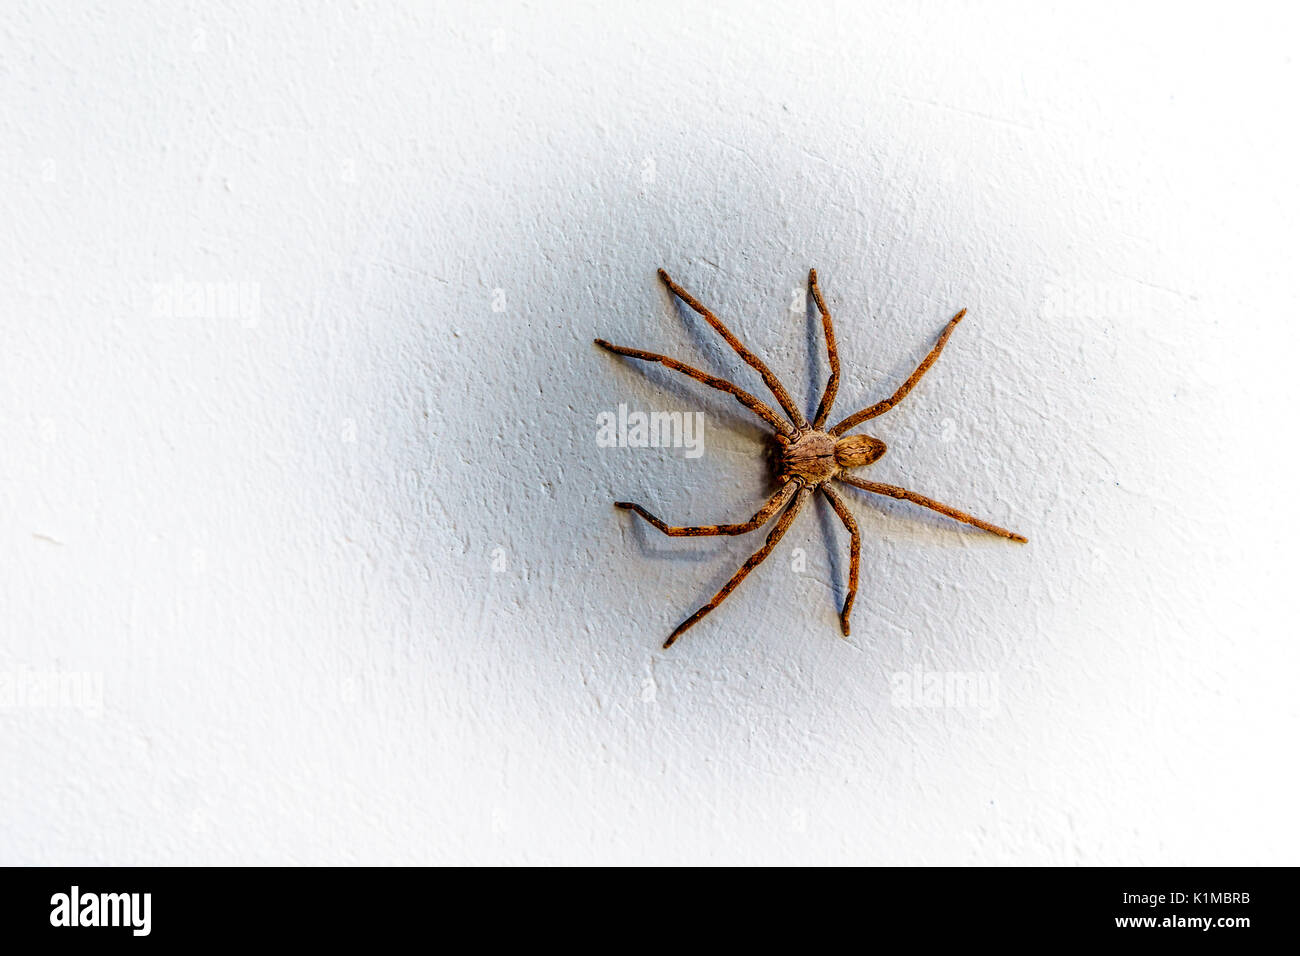 Rain Spider climbing up a white stucco wall on a house in Montagu in the Western Cape province of South Africa - Stock Image